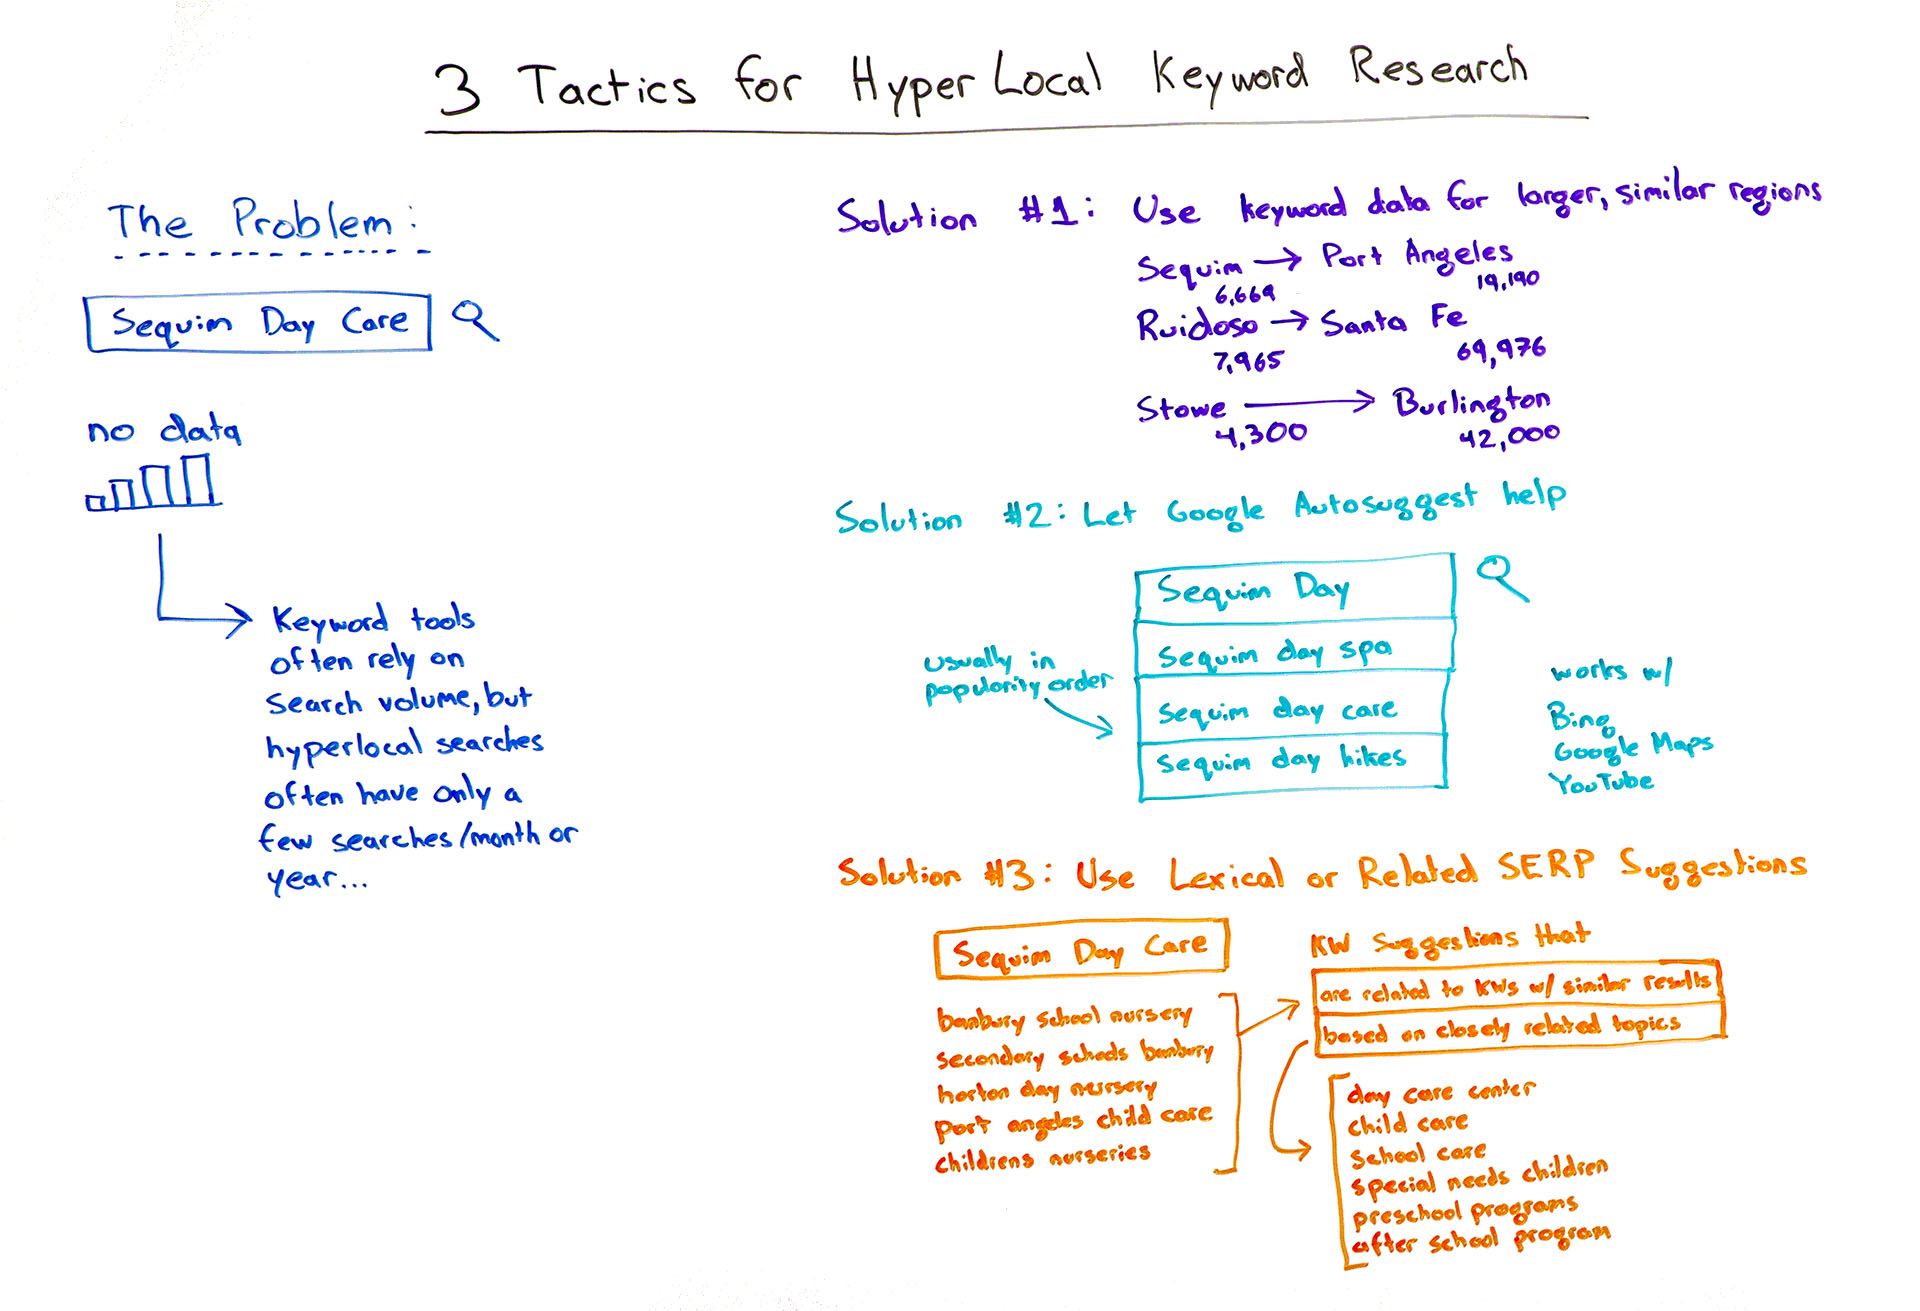 Hyper Local Keyword Research